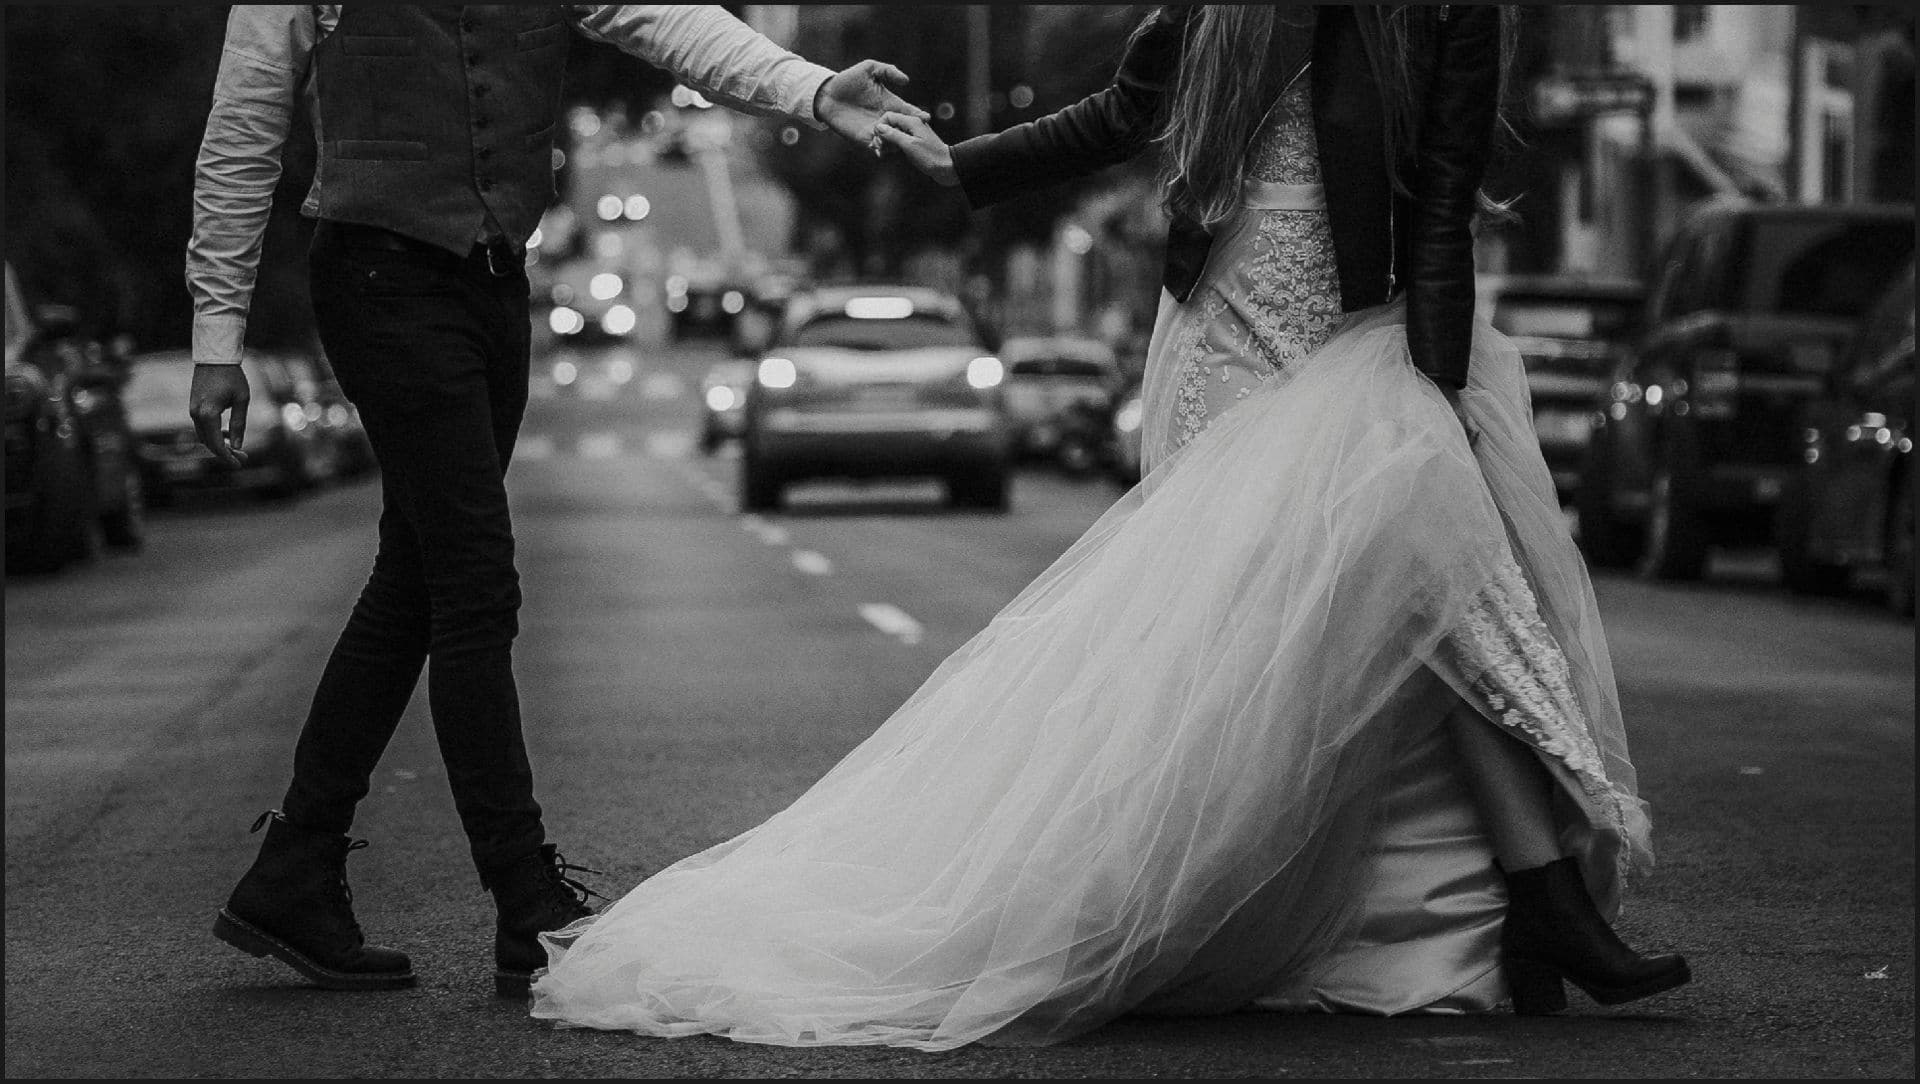 san francisco, california, elopement wedding, black and white, road, bride, groom